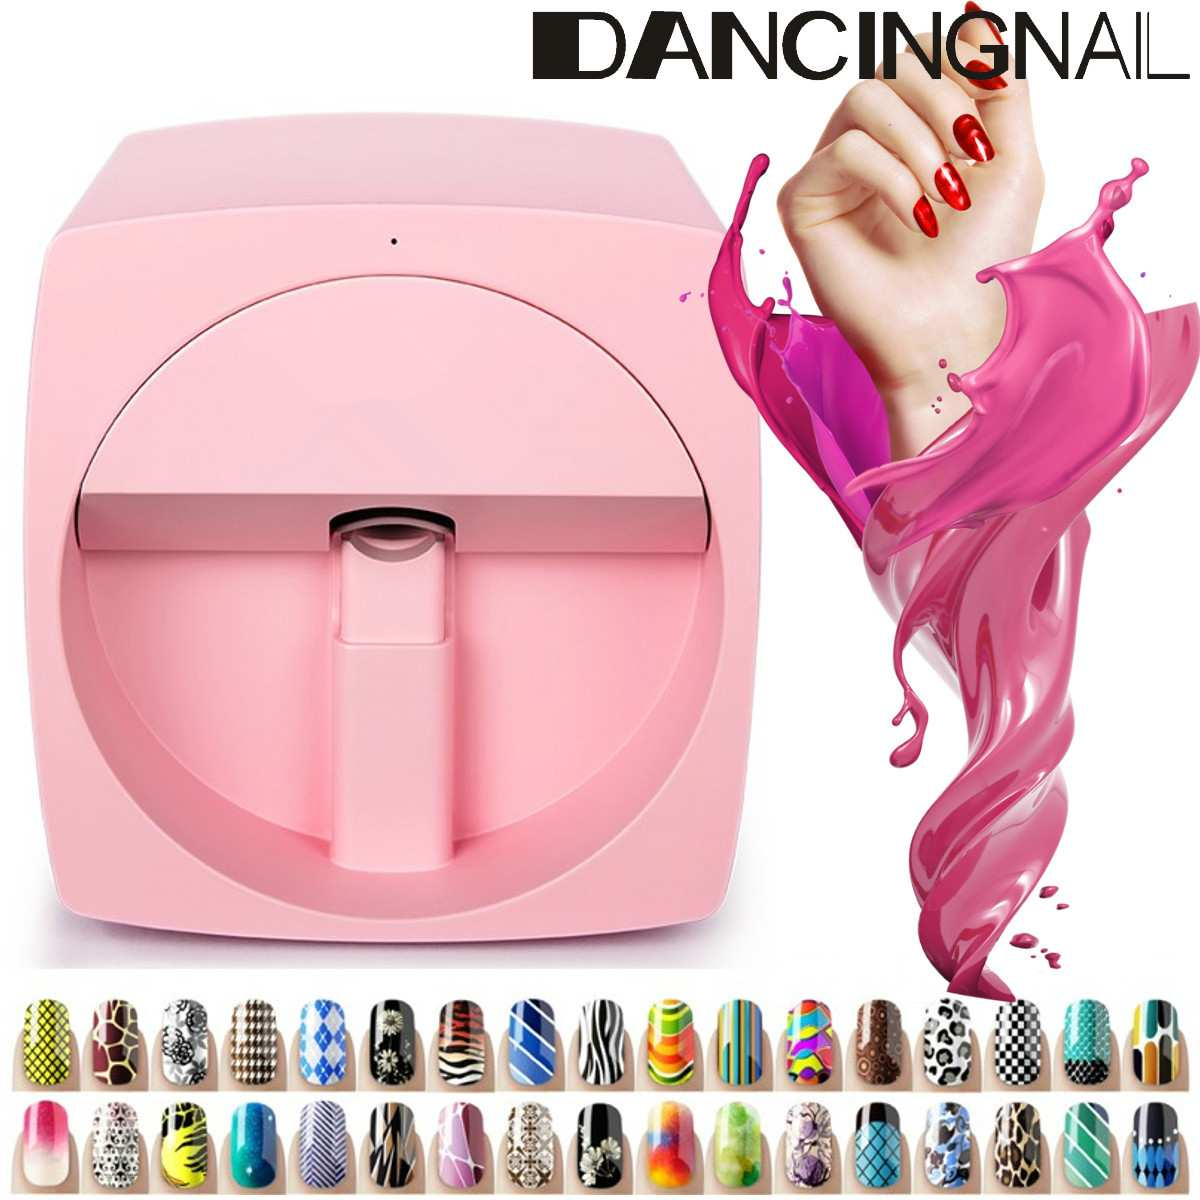 3D Mobile Nail Printer Manicure Transmission Picture Photo Pattern Color Printing Machine Advanced Nail Art Equipment3D Mobile Nail Printer Manicure Transmission Picture Photo Pattern Color Printing Machine Advanced Nail Art Equipment